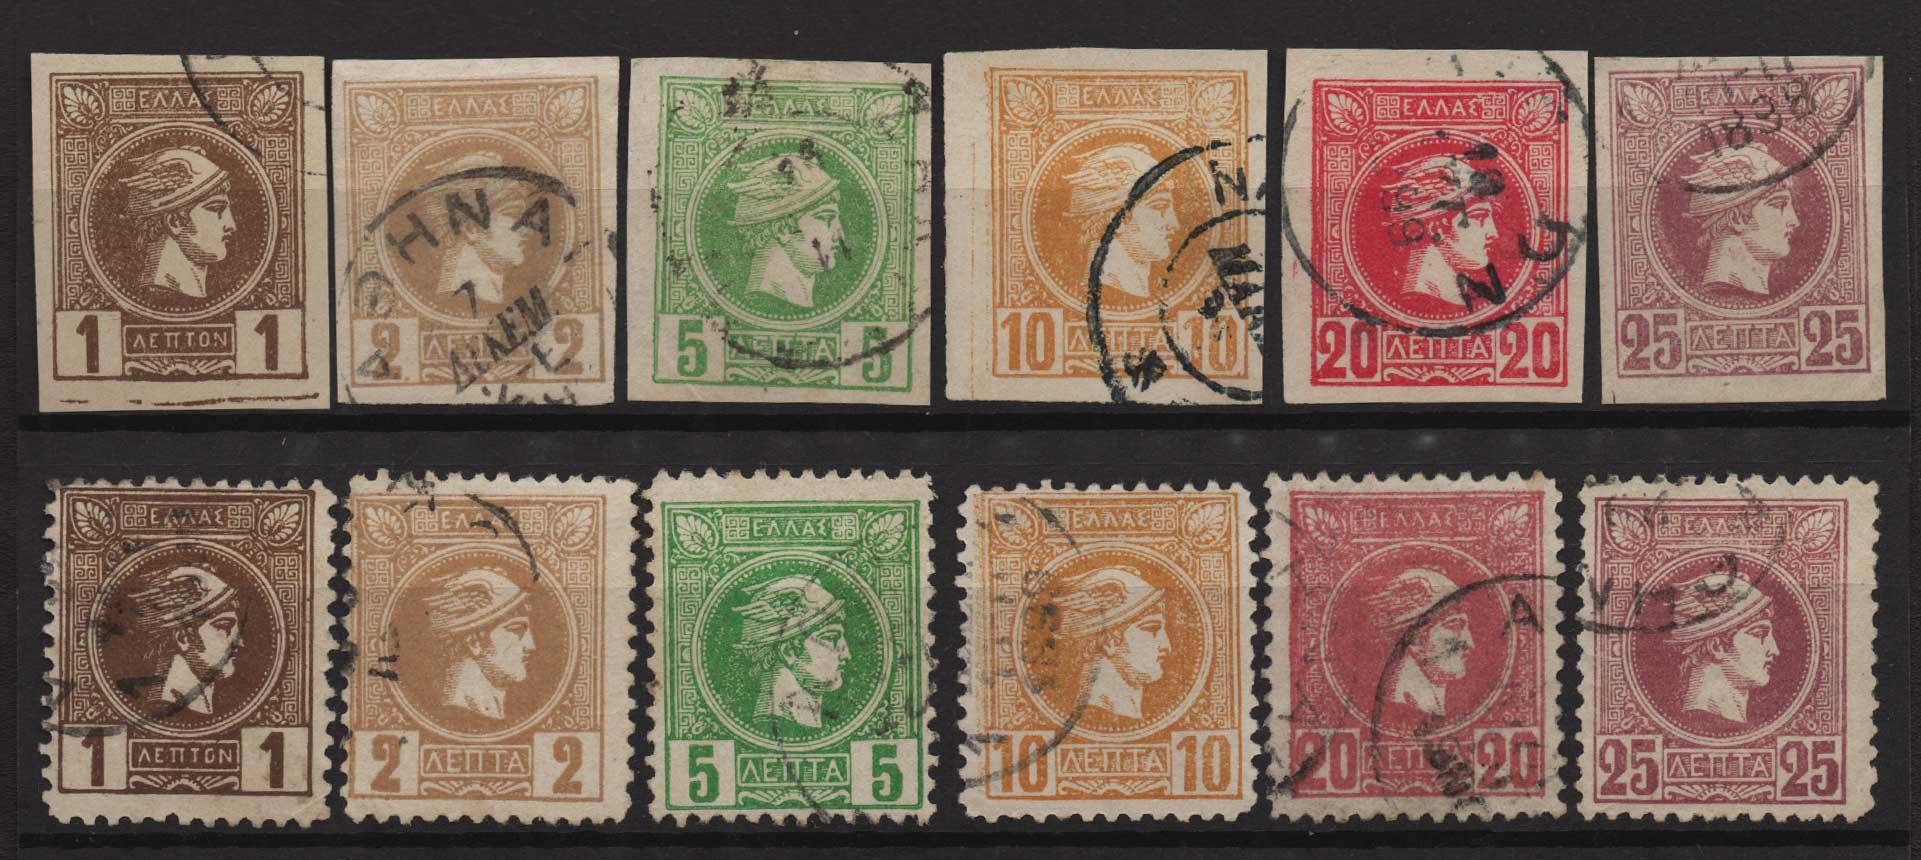 Lot 359 - -  SMALL HERMES HEAD ATHENSPRINTING - 3rd PERIOD -  Athens Auctions Public Auction 89 General Stamp Sale